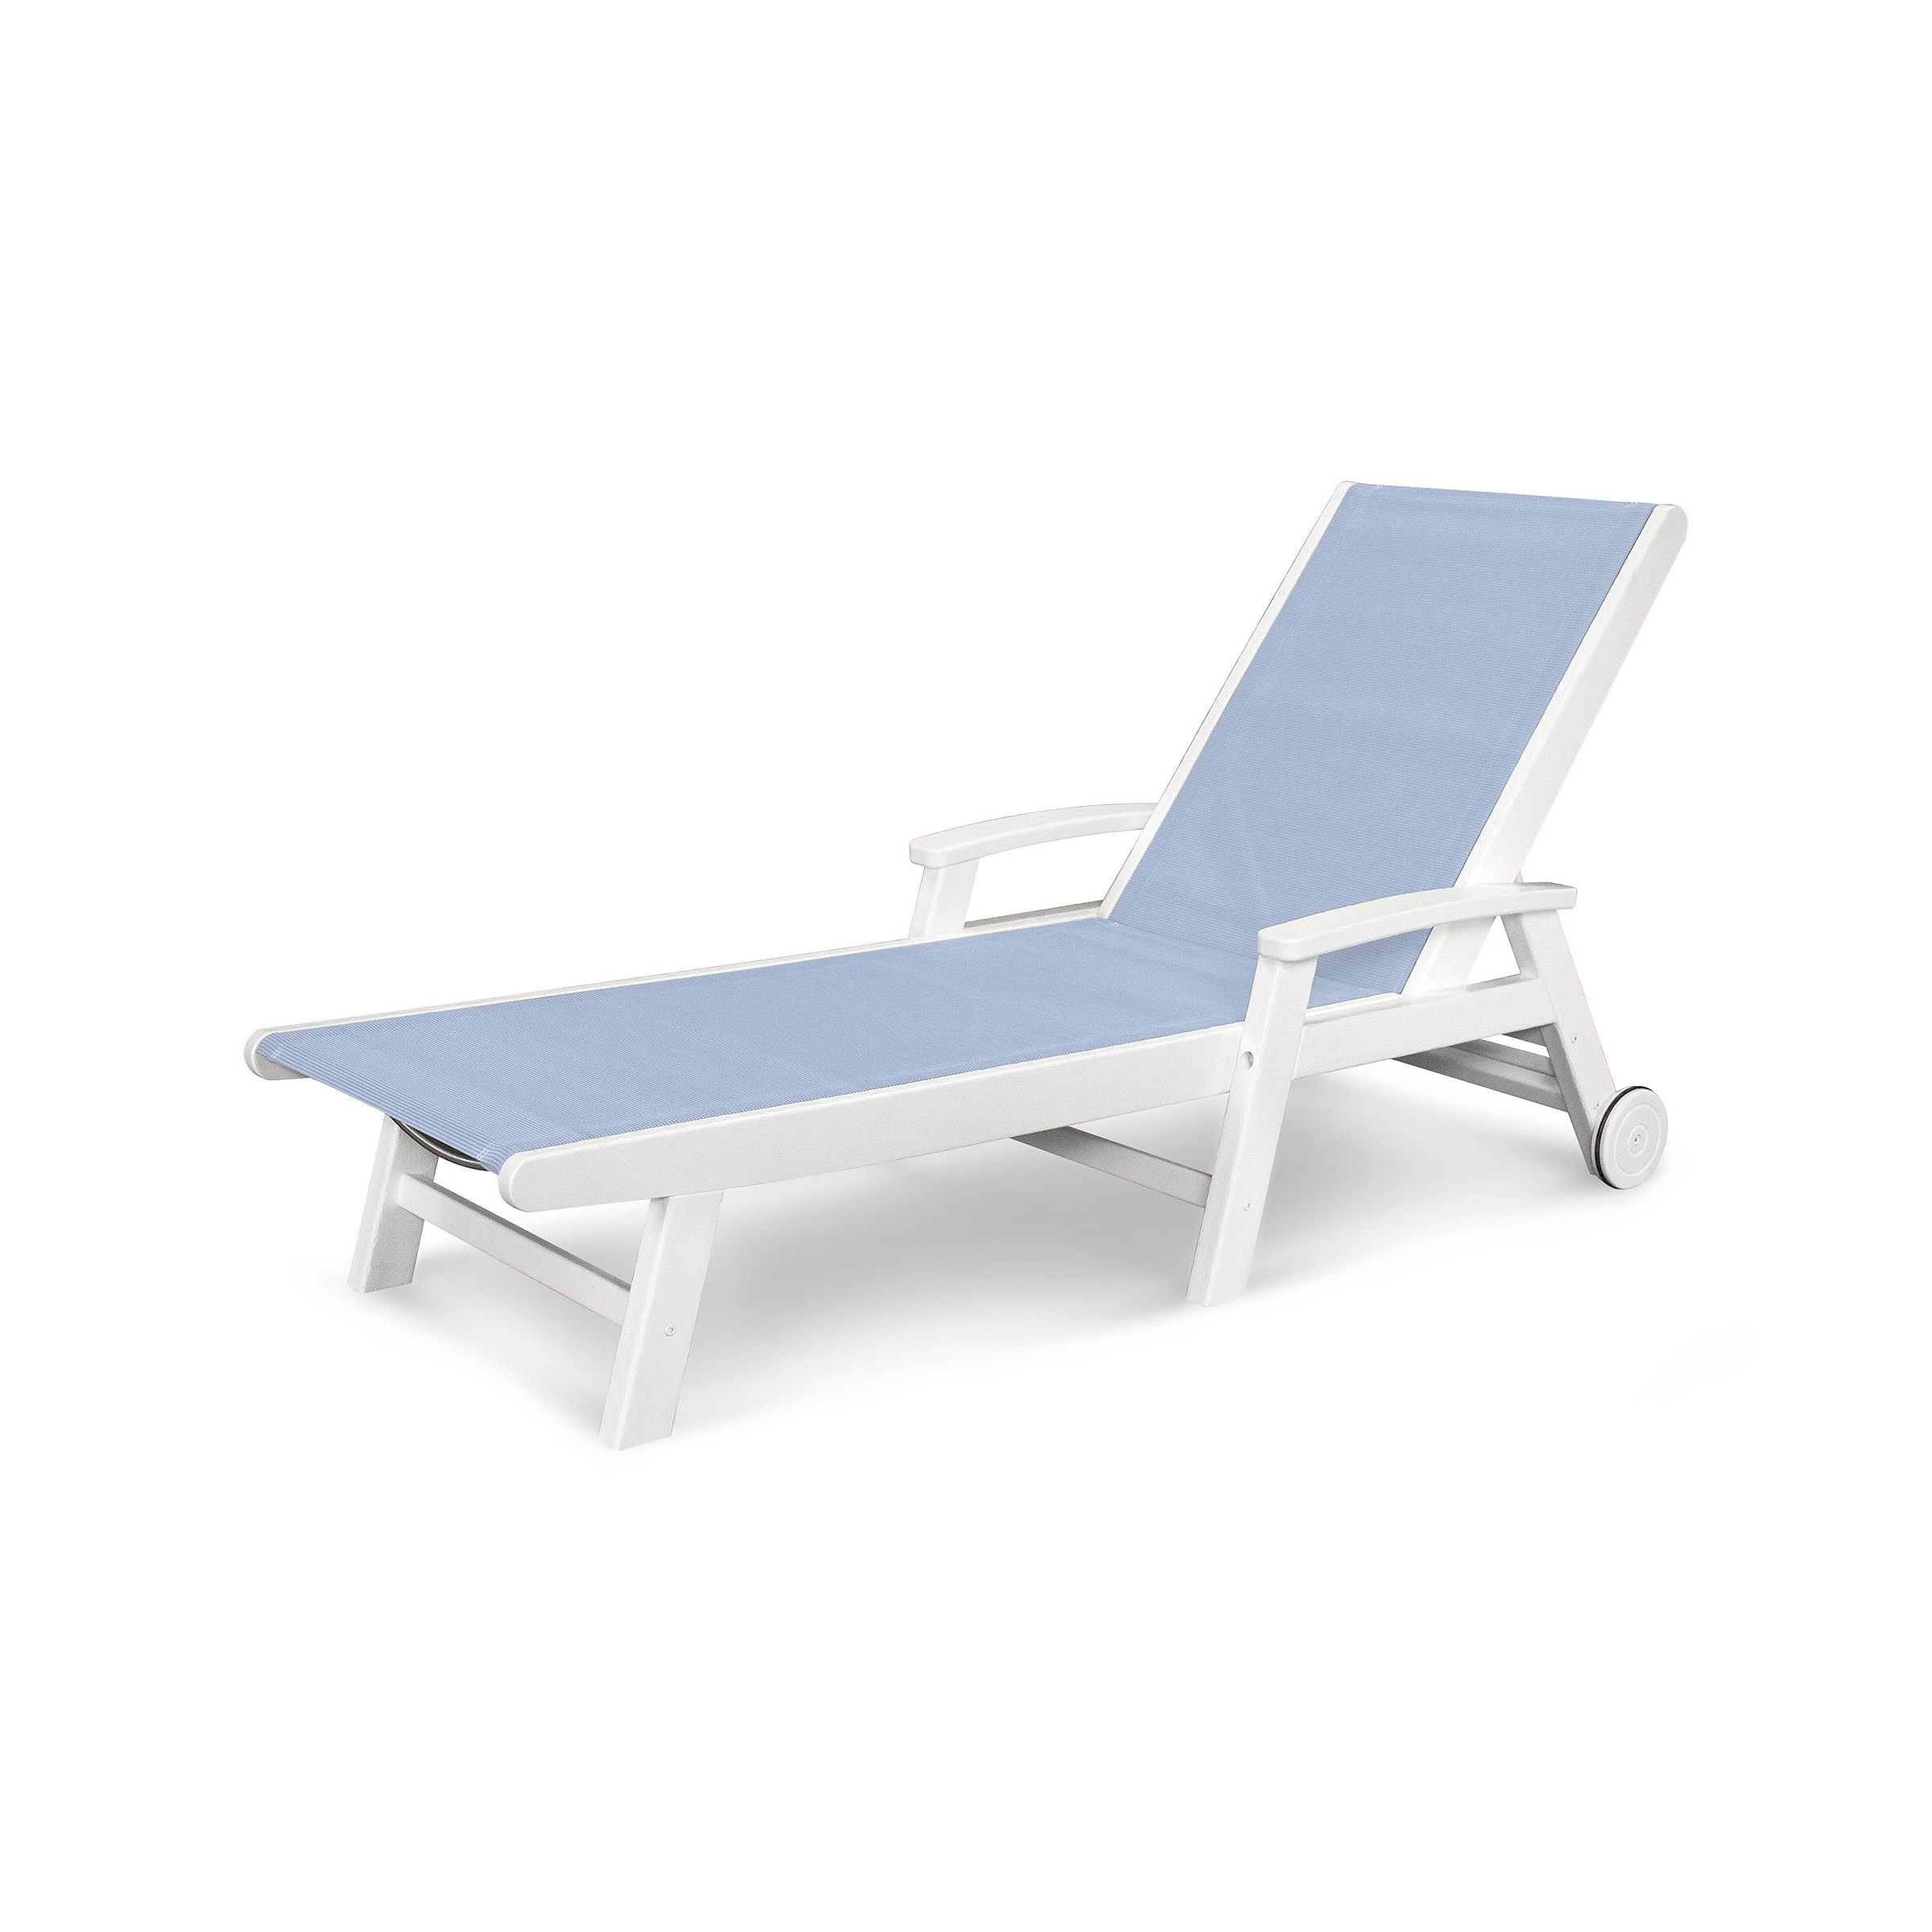 Outdoor Chaise Lounges (View 10 of 15)